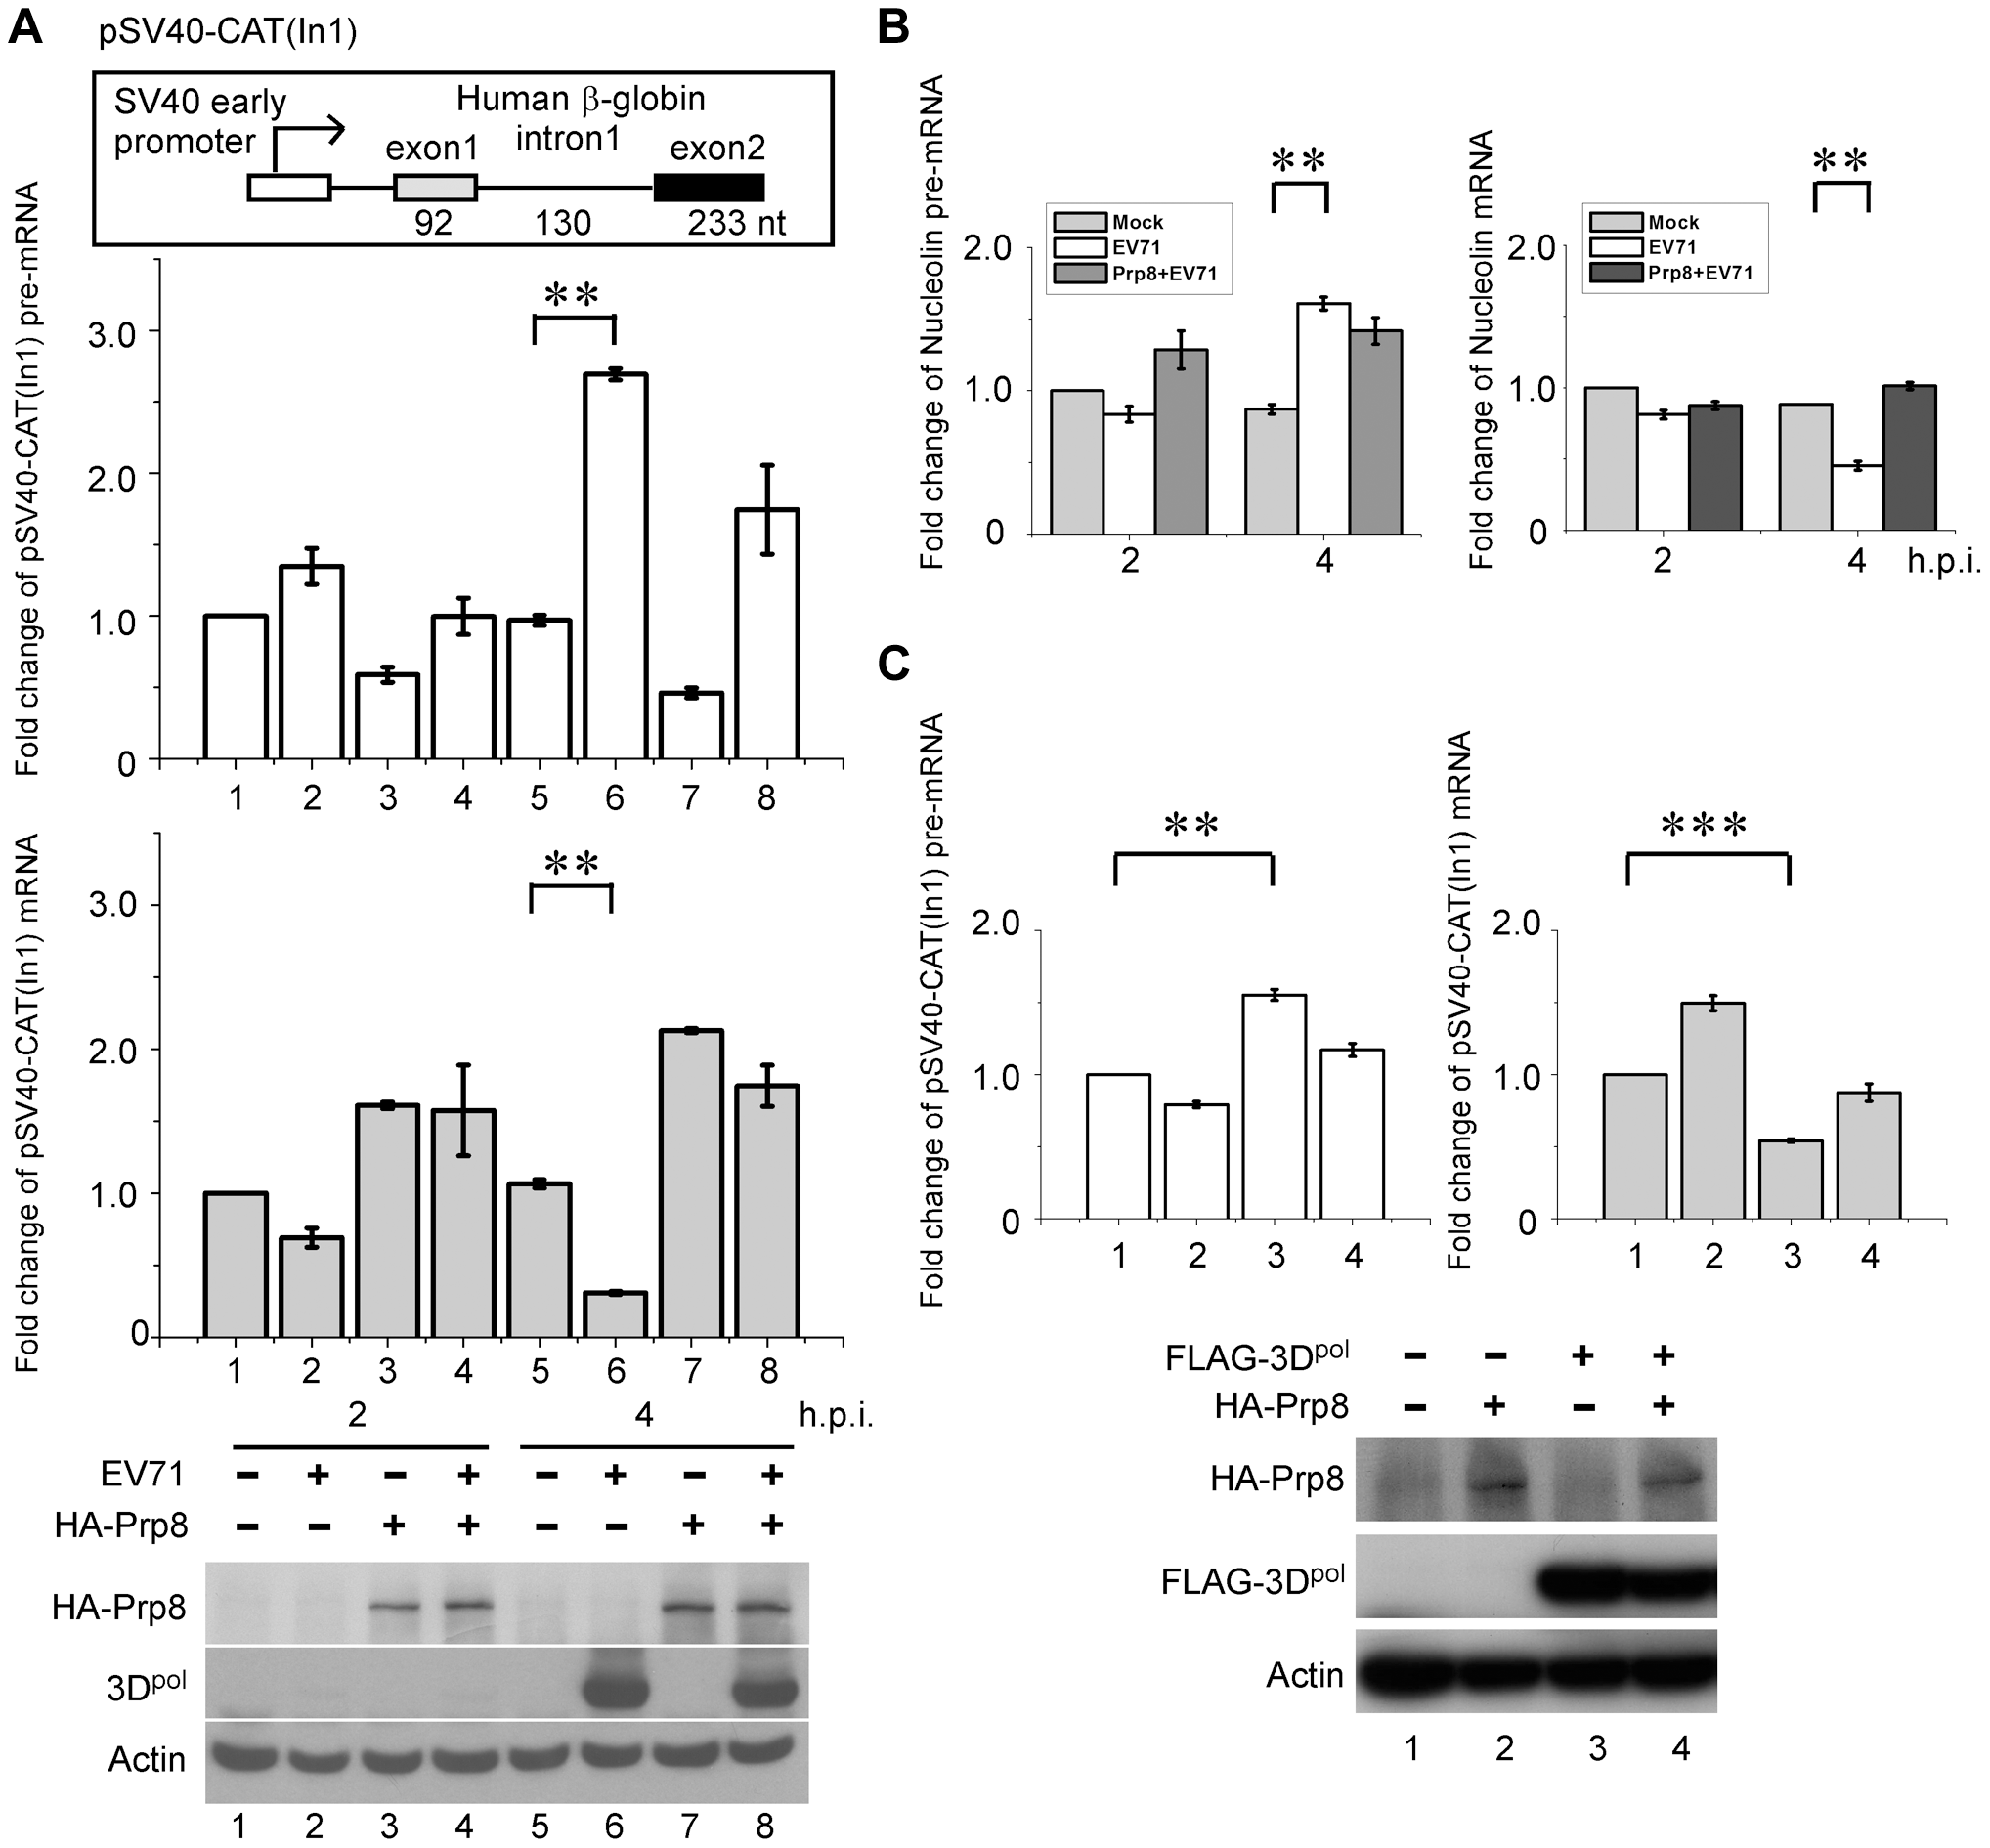 3D<sup>pol</sup> affects cellular pre-mRNA splicing by interacting with Prp8.